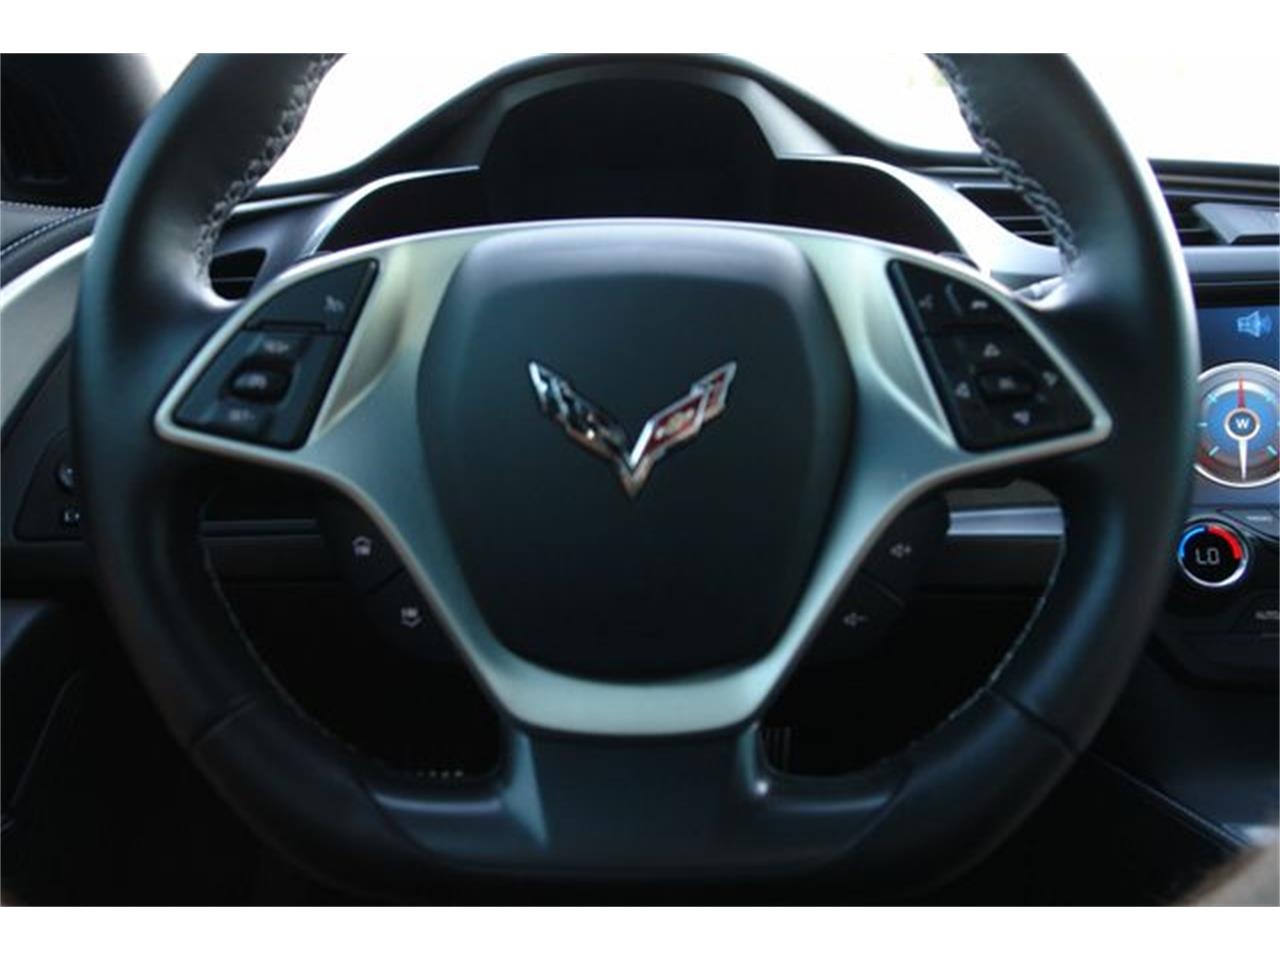 2017 Chevrolet Corvette for sale in Phoenix, AZ – photo 43